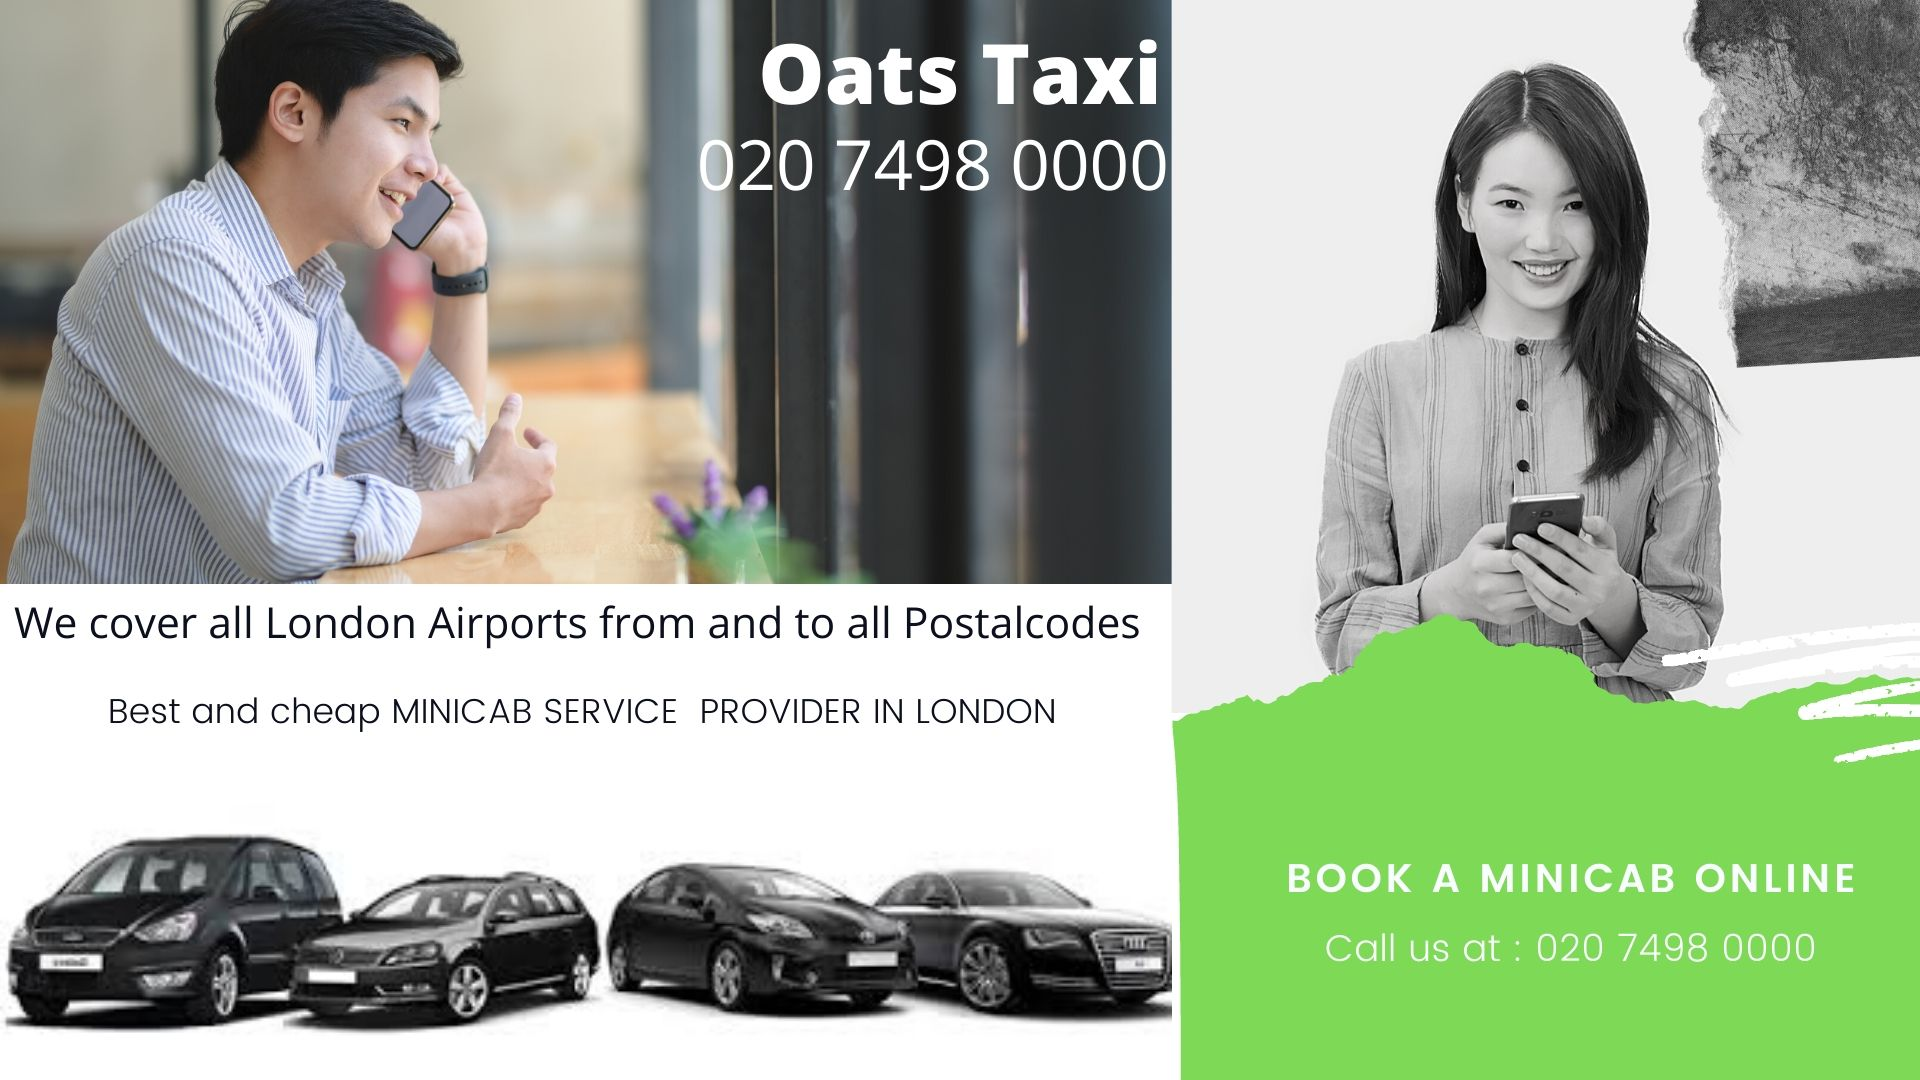 Taxi Office Near CAROLINE PLACE, Battersea SW11, Taxi From Battersea SW11 To Gatwick Airport